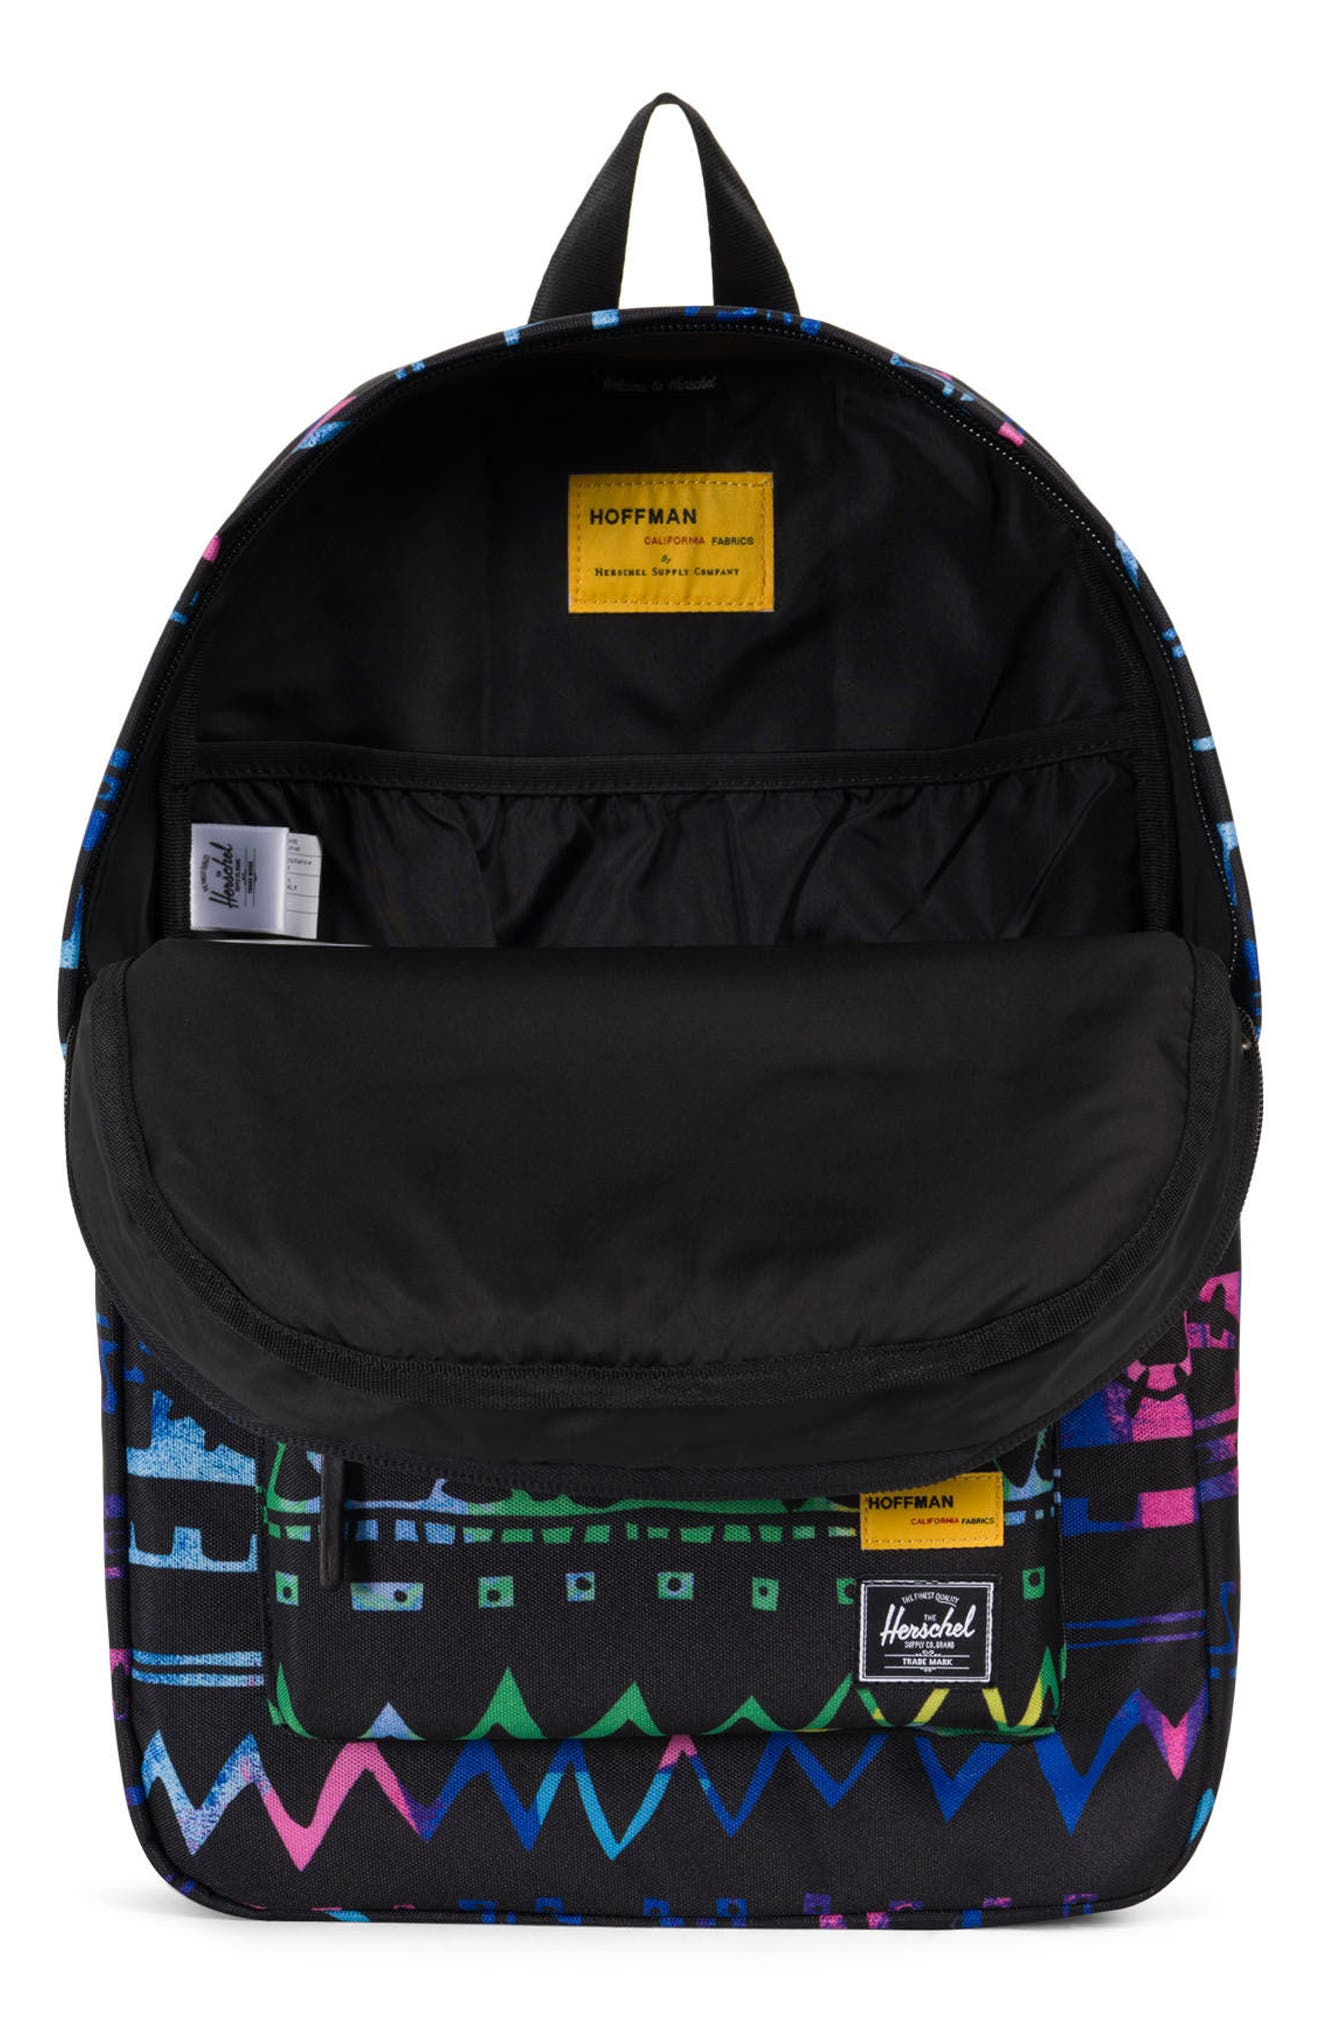 Hoffman Winlaw Backpack,                             Alternate thumbnail 6, color,